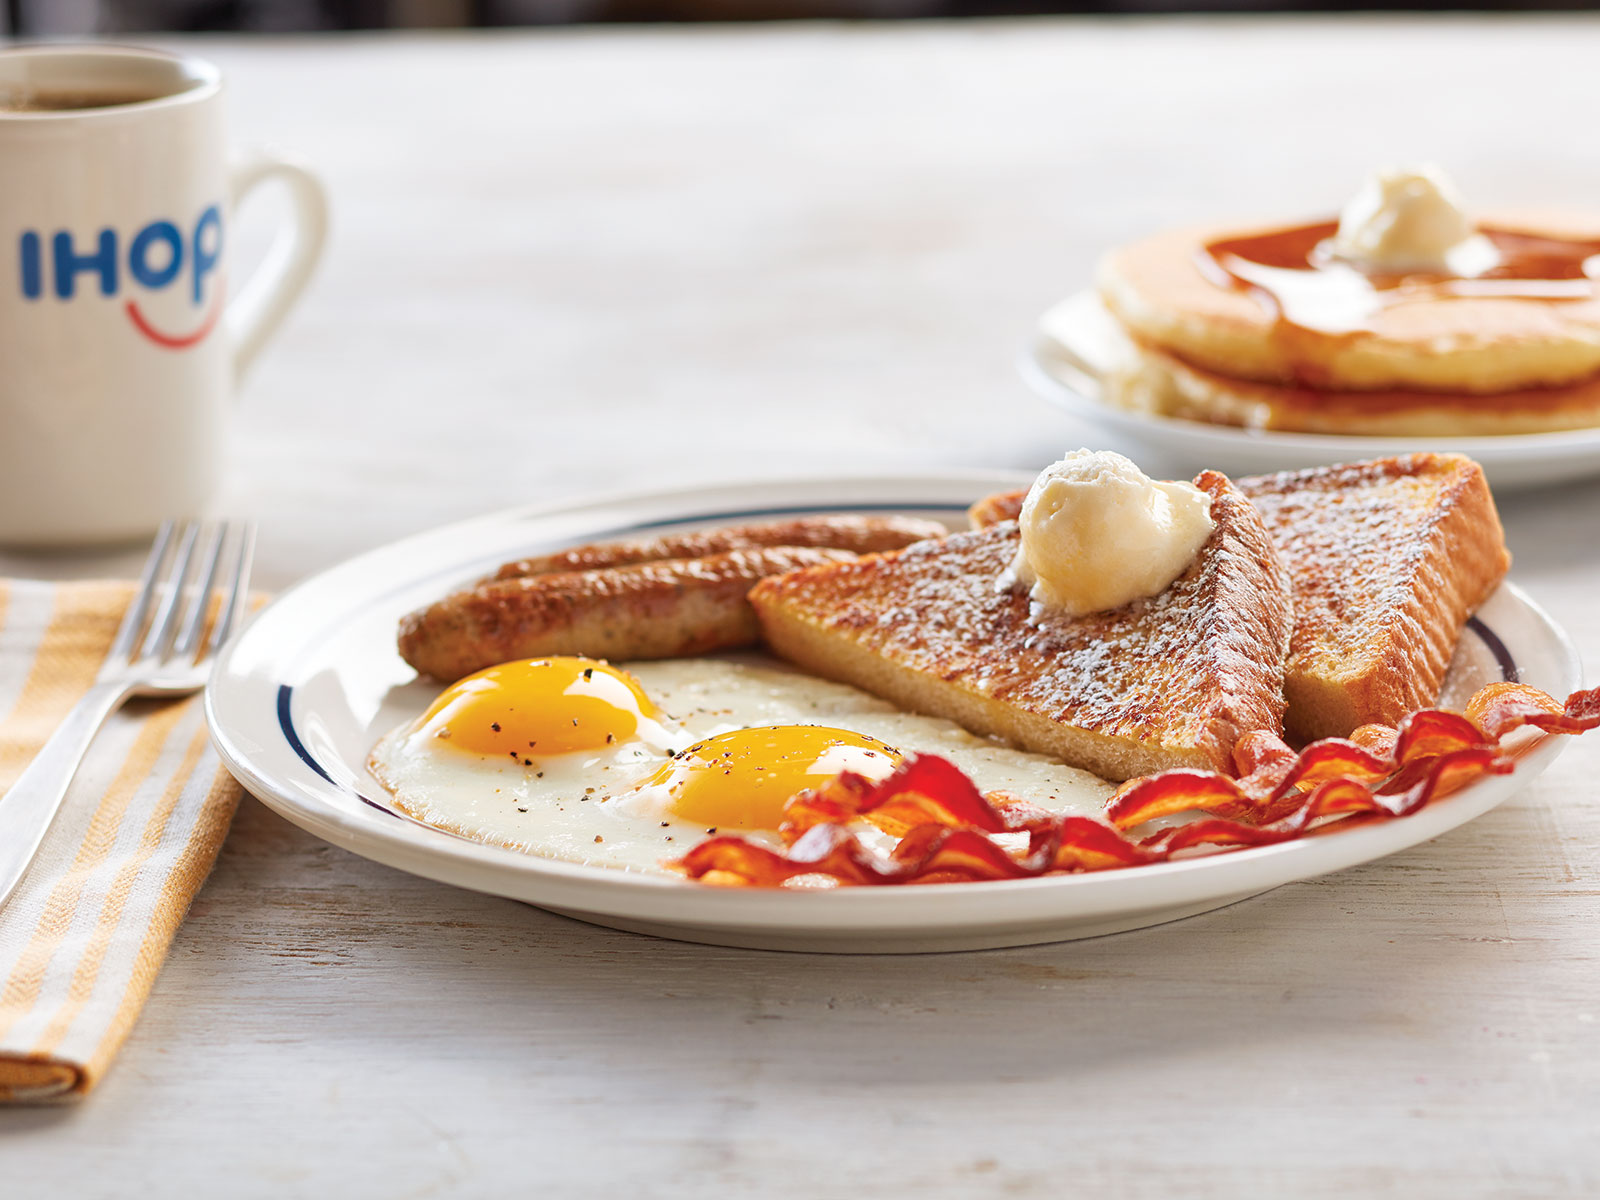 February 27 of this year will be IHOP's National Pancake Day, and guests can receive a free stack of hotcakes from 7 a.m. to 7 p.m.